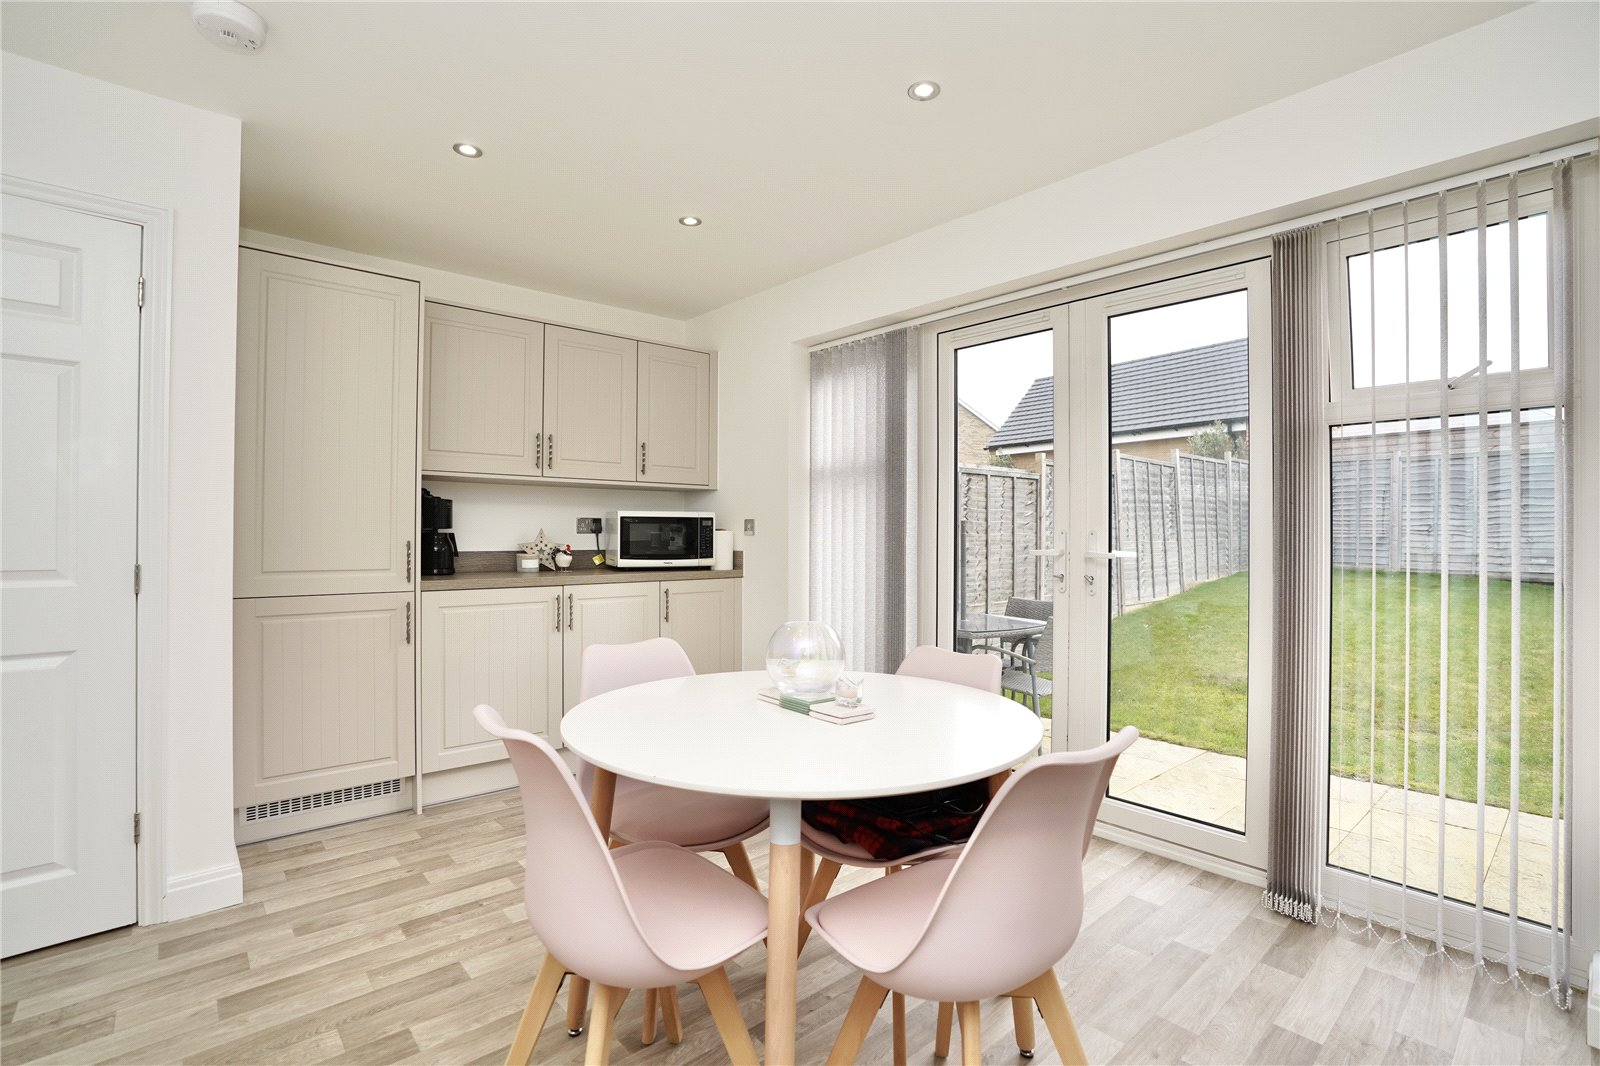 3 bed house for sale in Sawtry, PE28 5ZJ 5